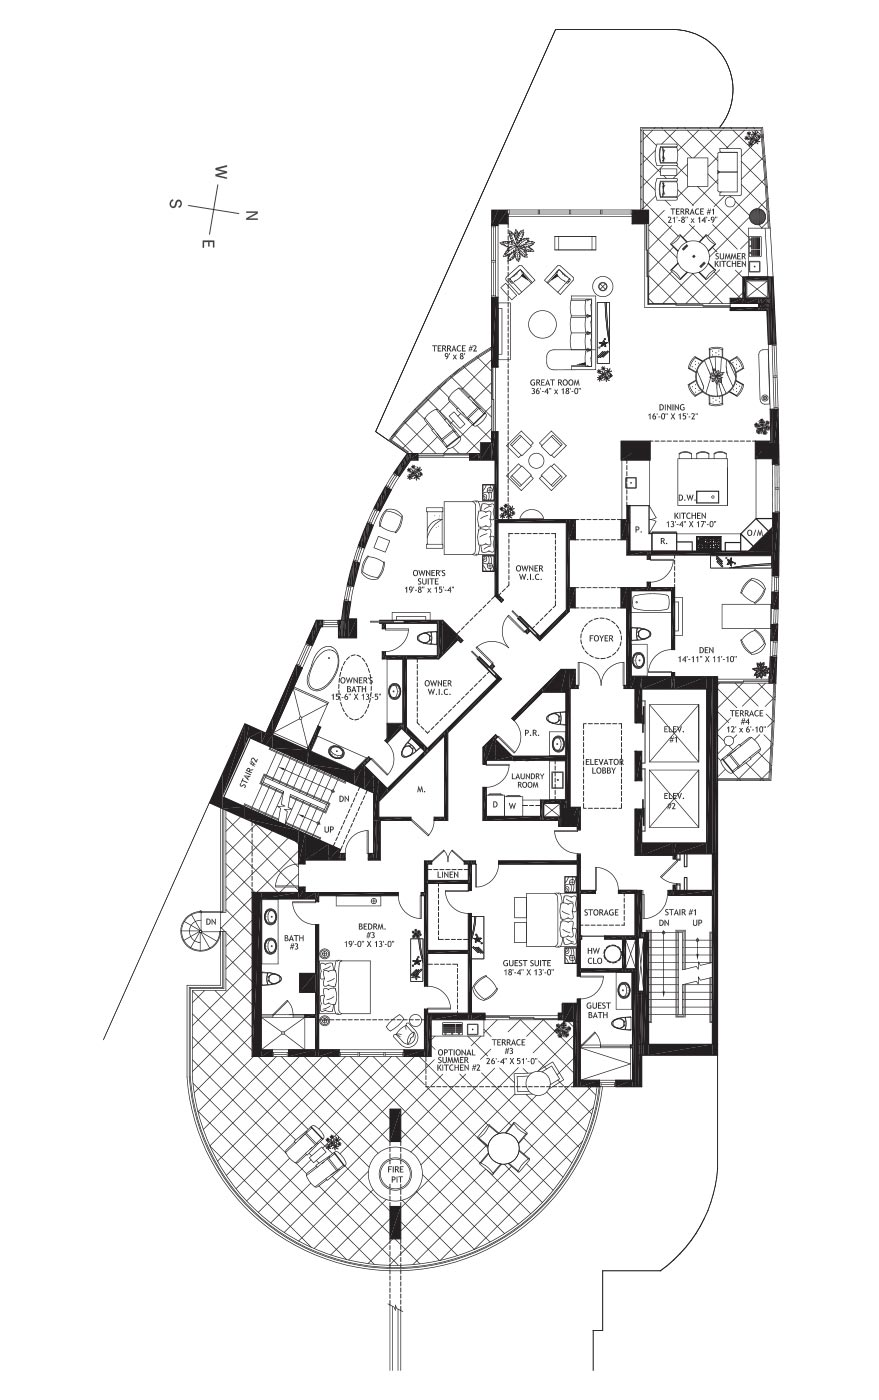 Residence Level 4 - Floor plan